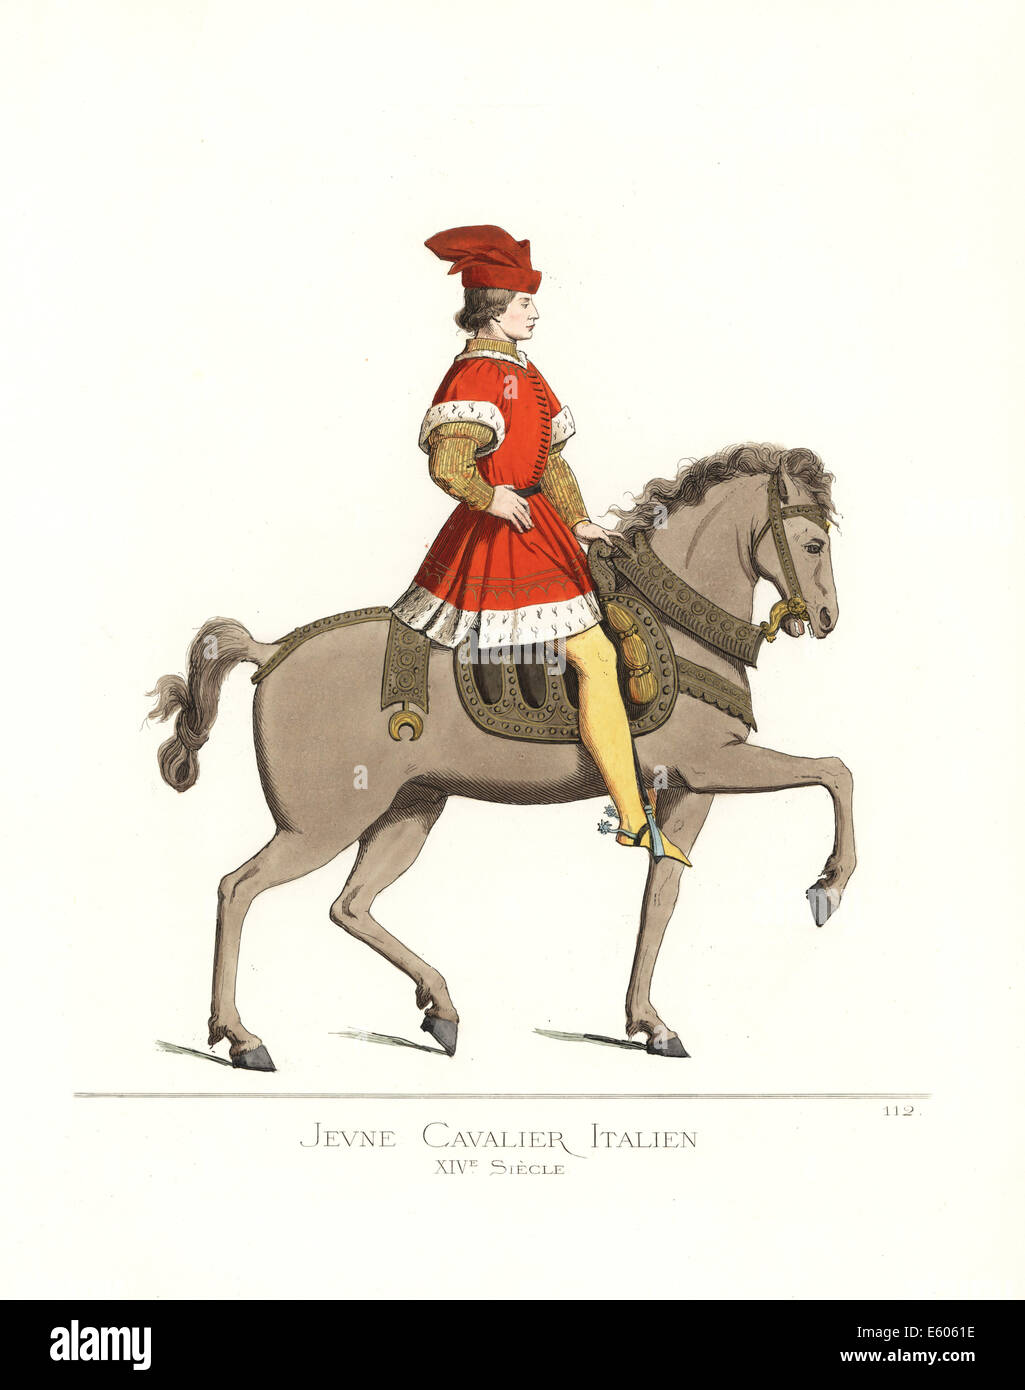 Costume of a young Italian cavalry man, 14th century. - Stock Image